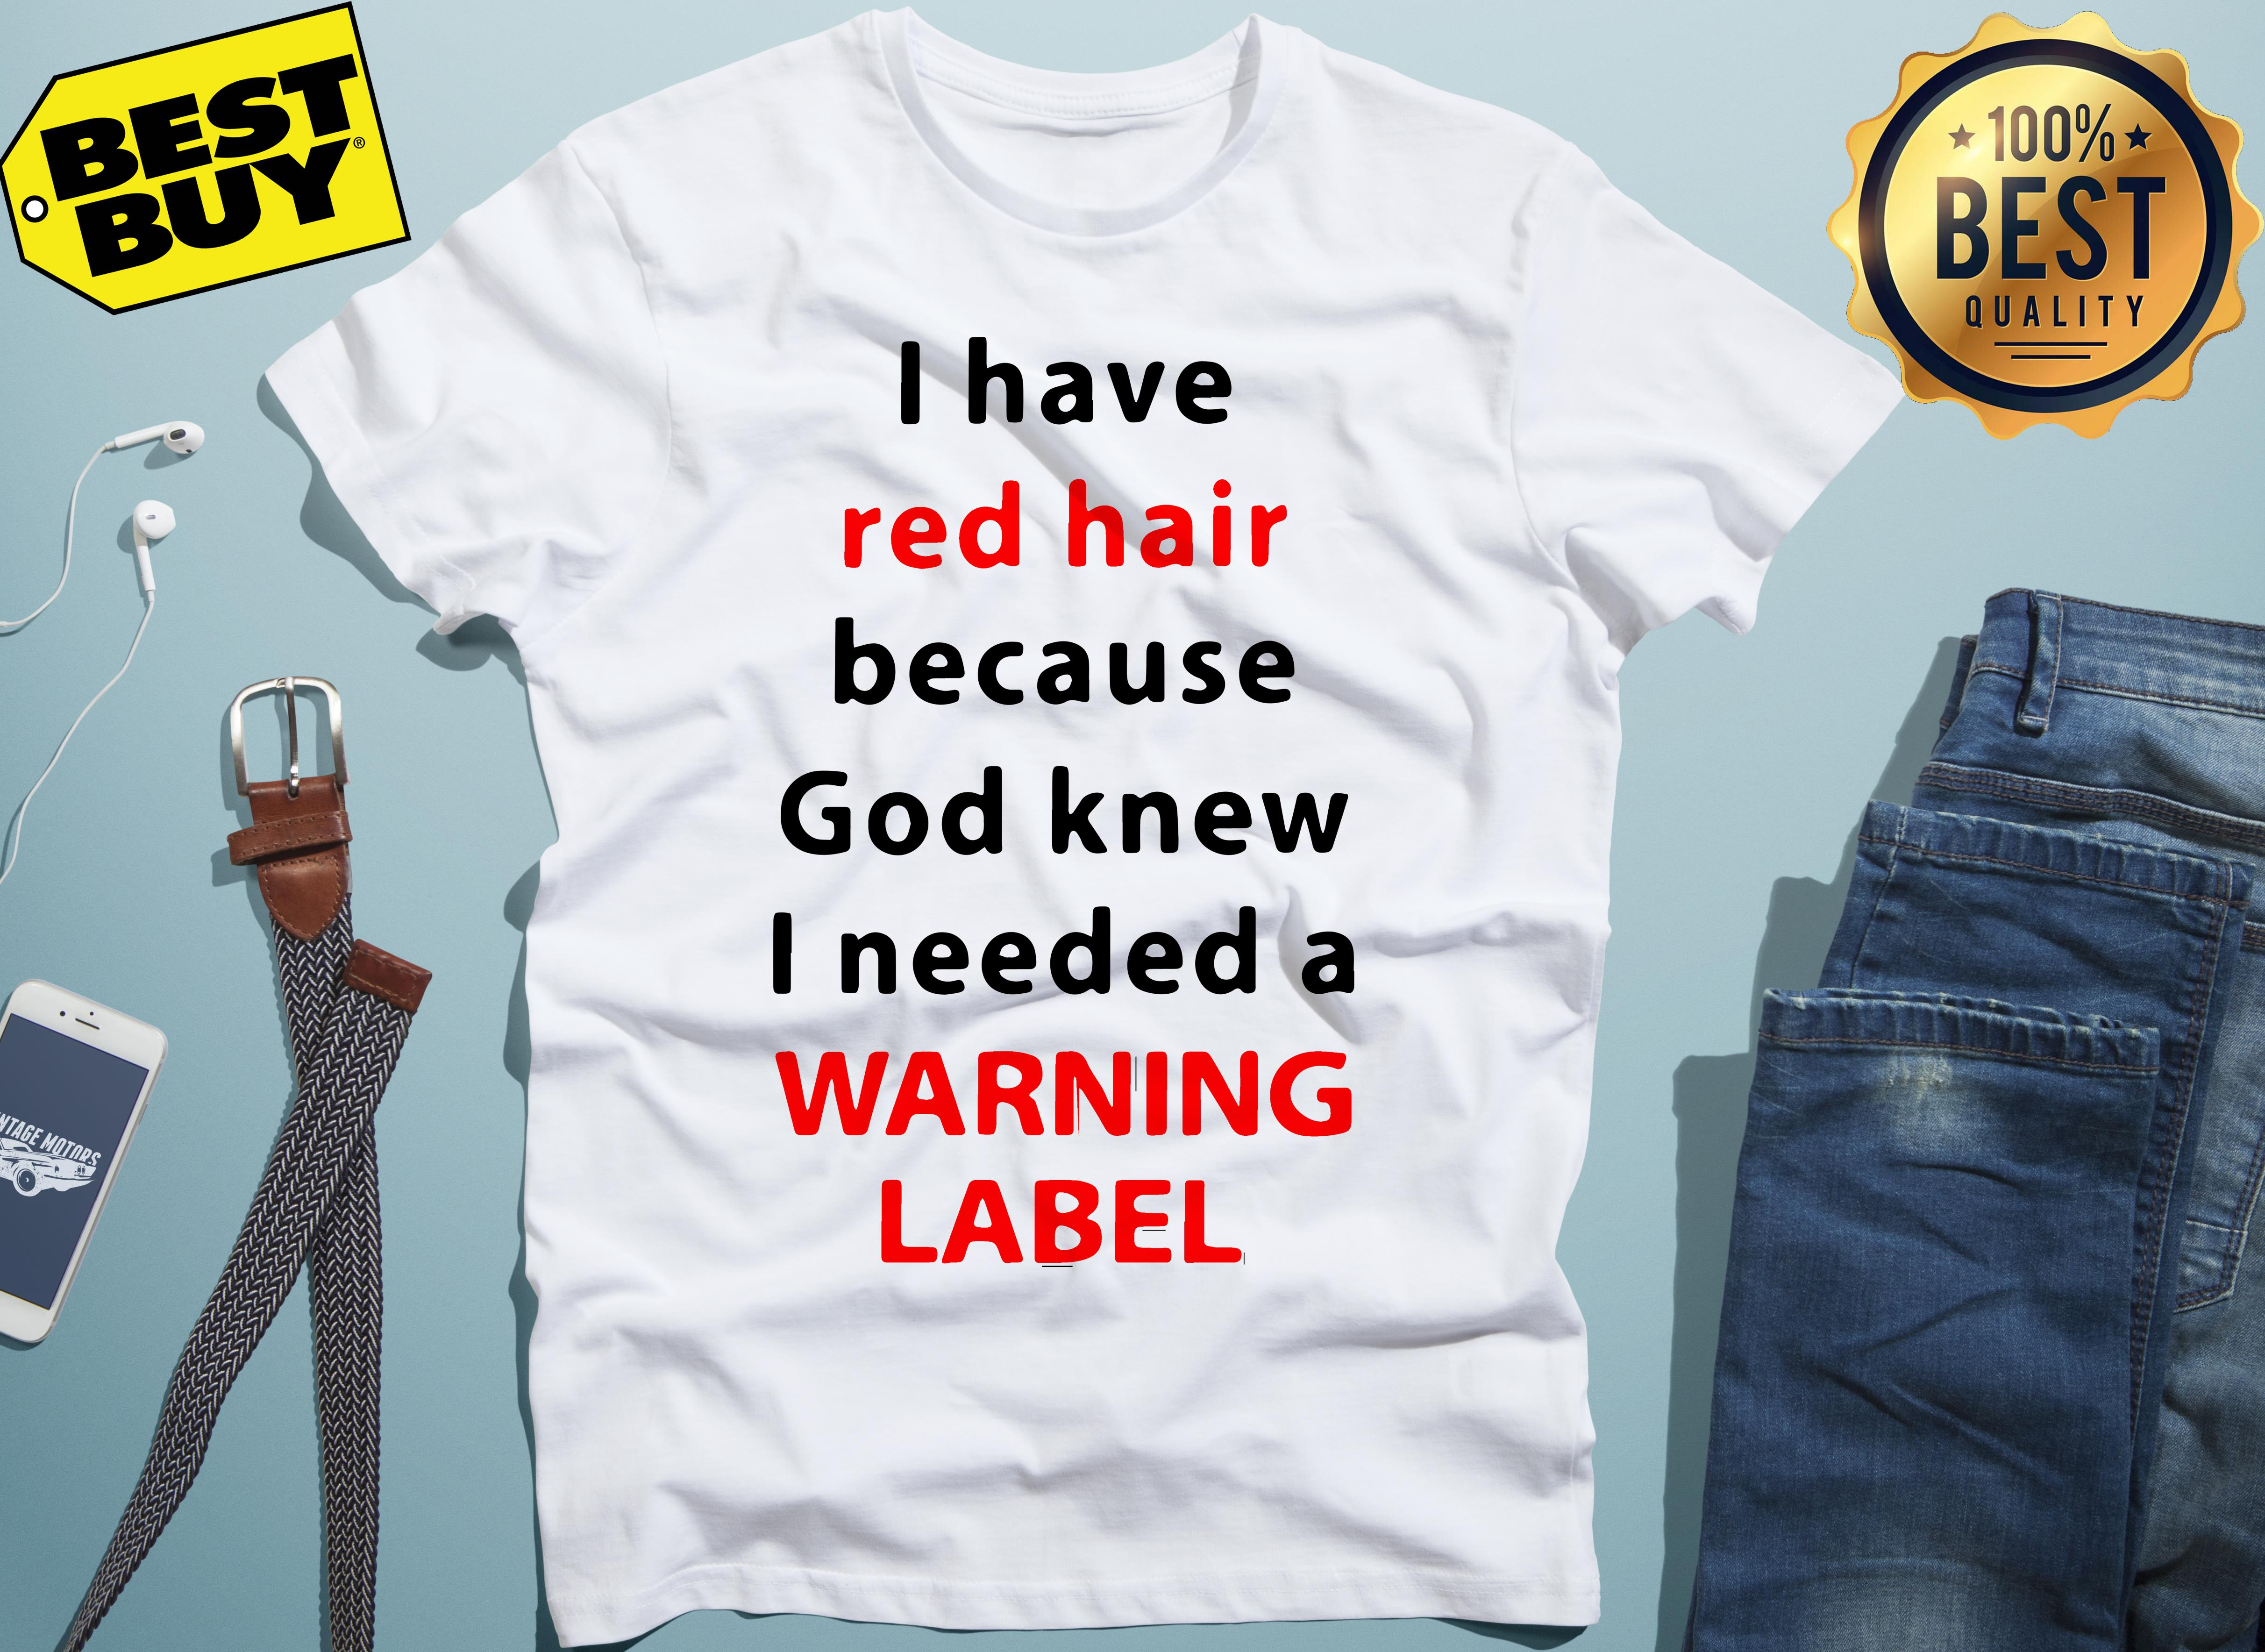 official red hair god knew needed warning label Ladiestee - I have red hair because God knew I needed a warning label shirt, ladies tee, v-neck, tank top